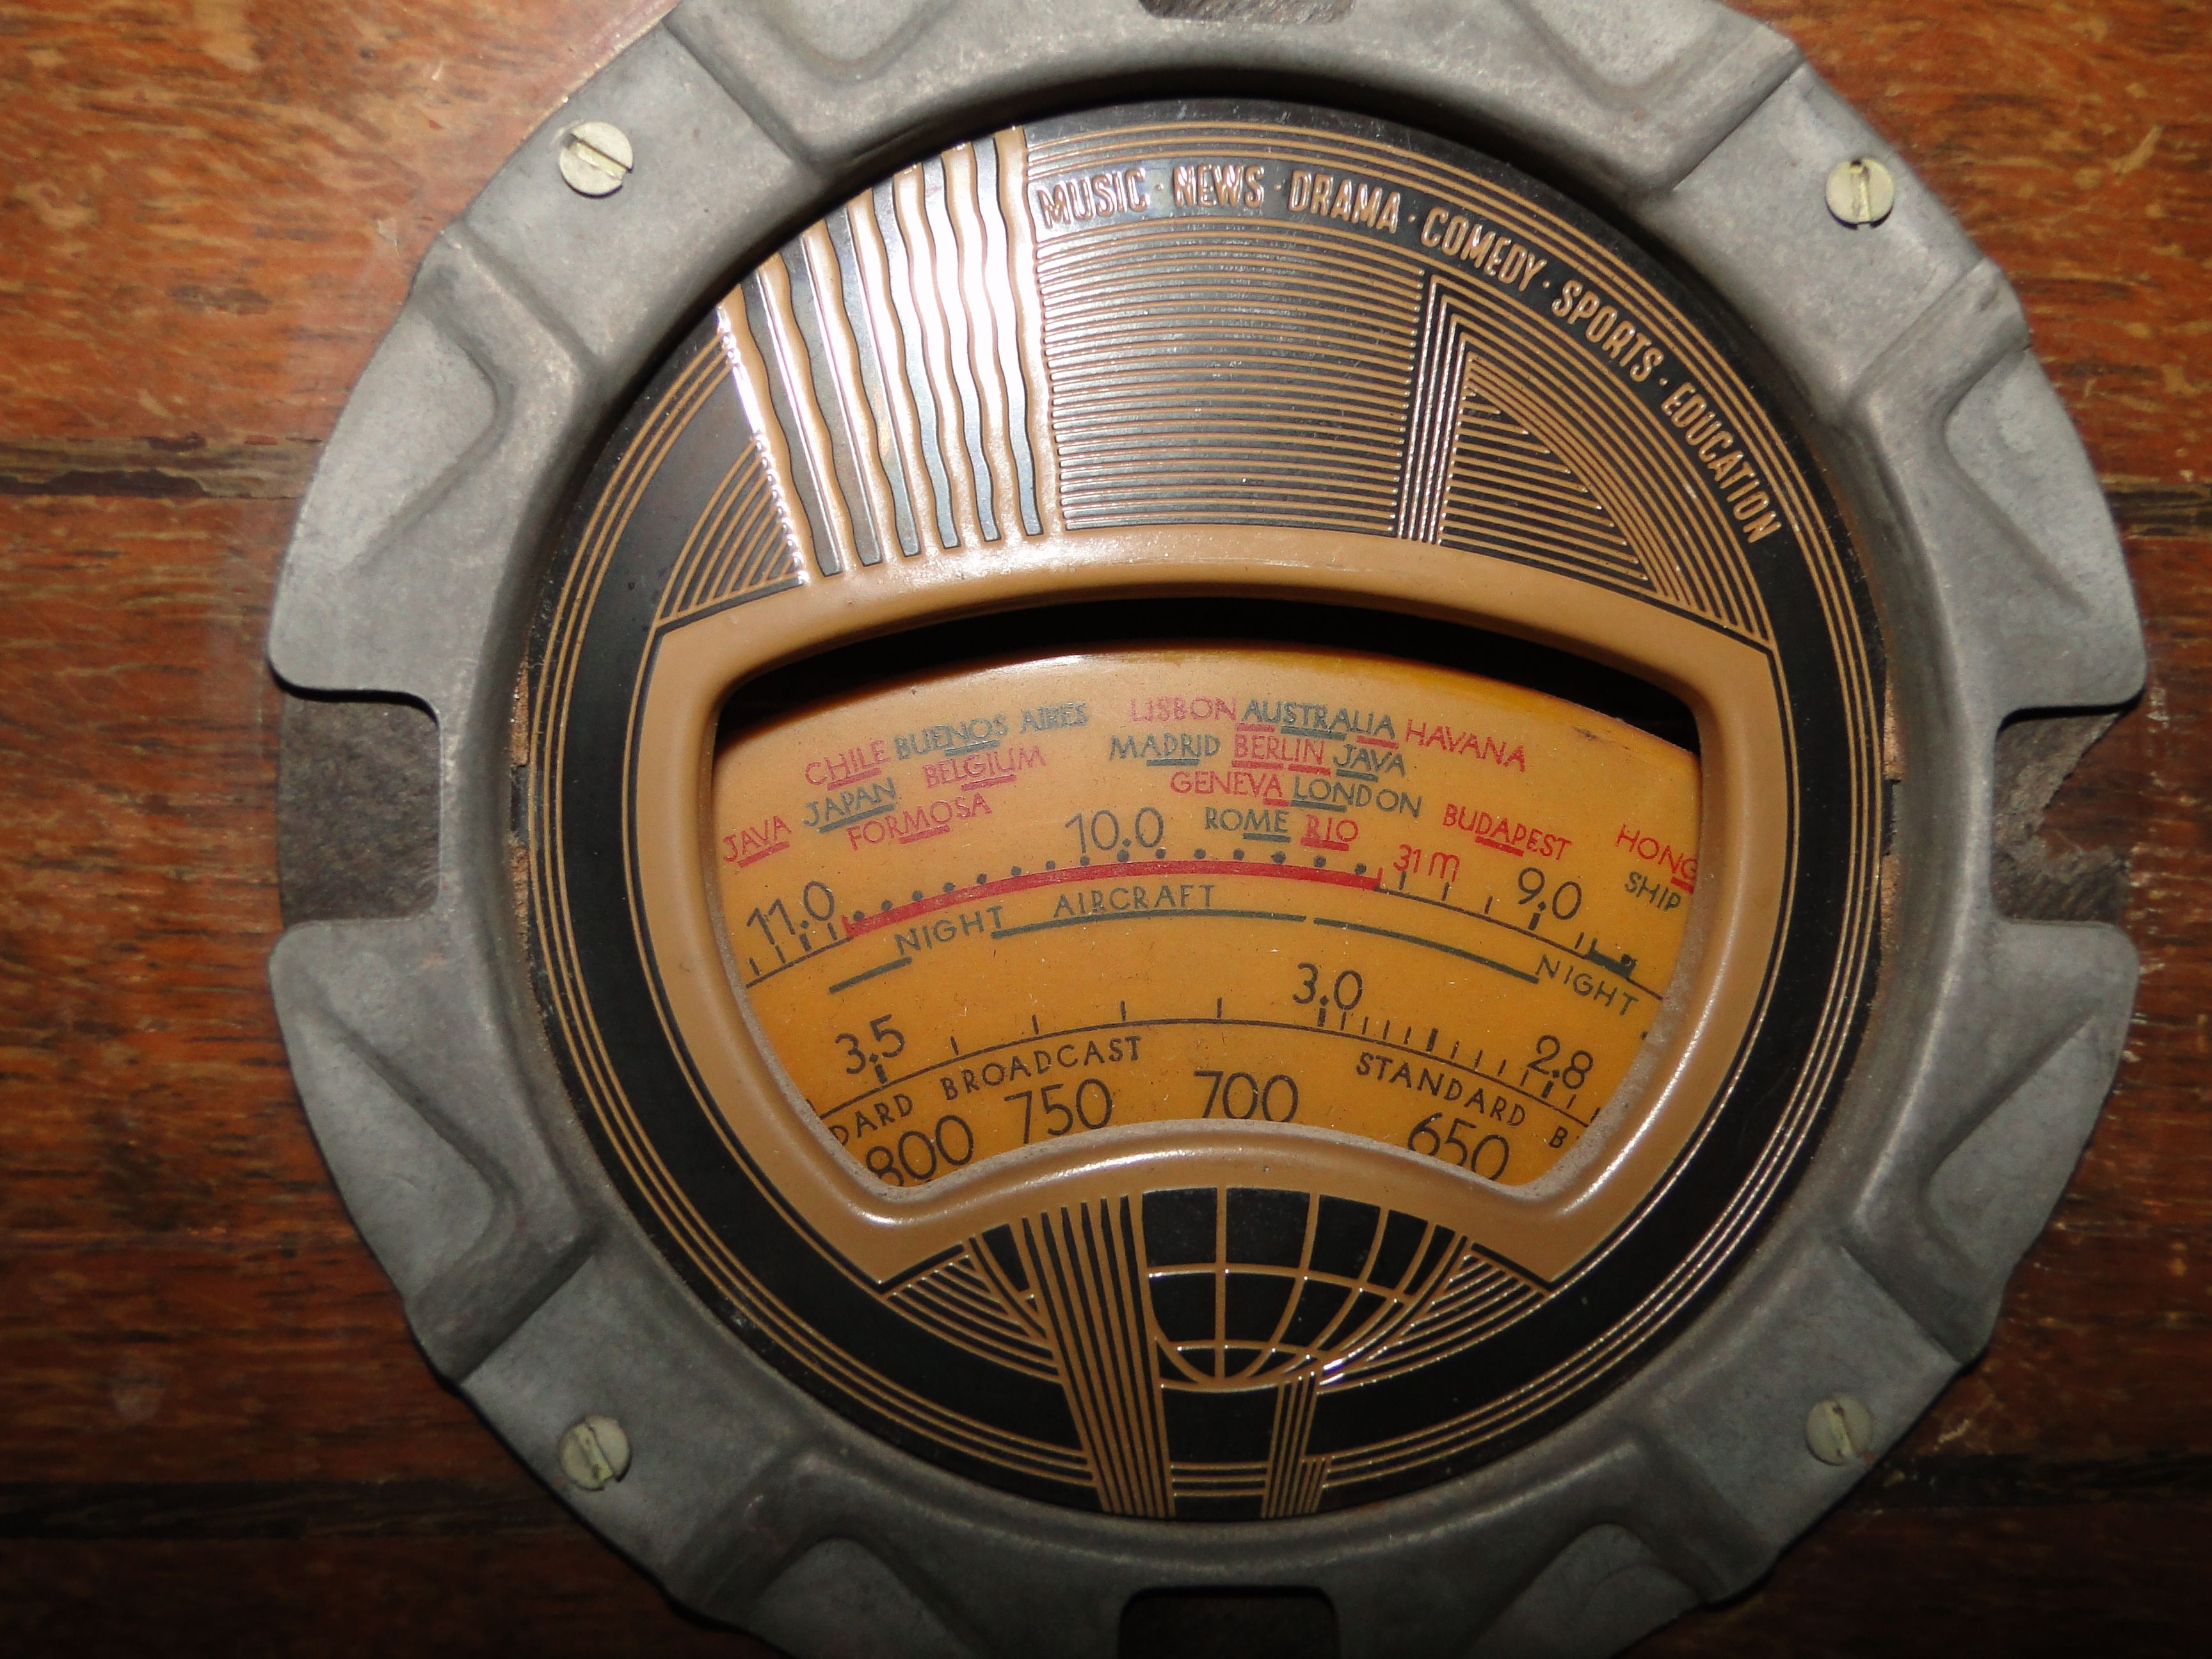 Radio Receiver Tuning Dial From A 1937 Philco Model 37 610